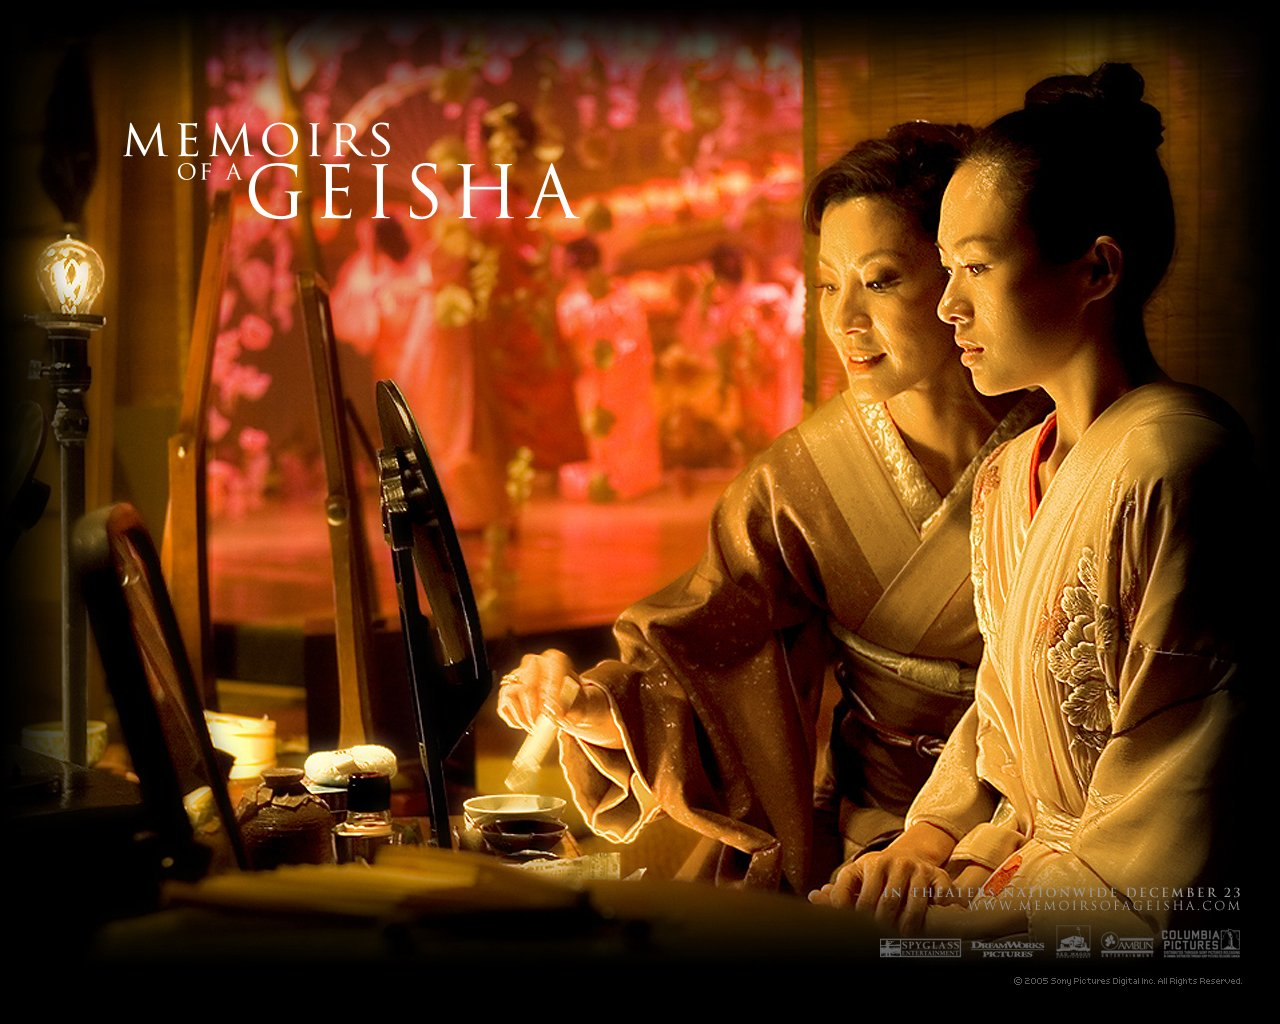 Memoirs of a Geisha 2005 wallpaper   FreeMovieWallpapersorg 1280x1024